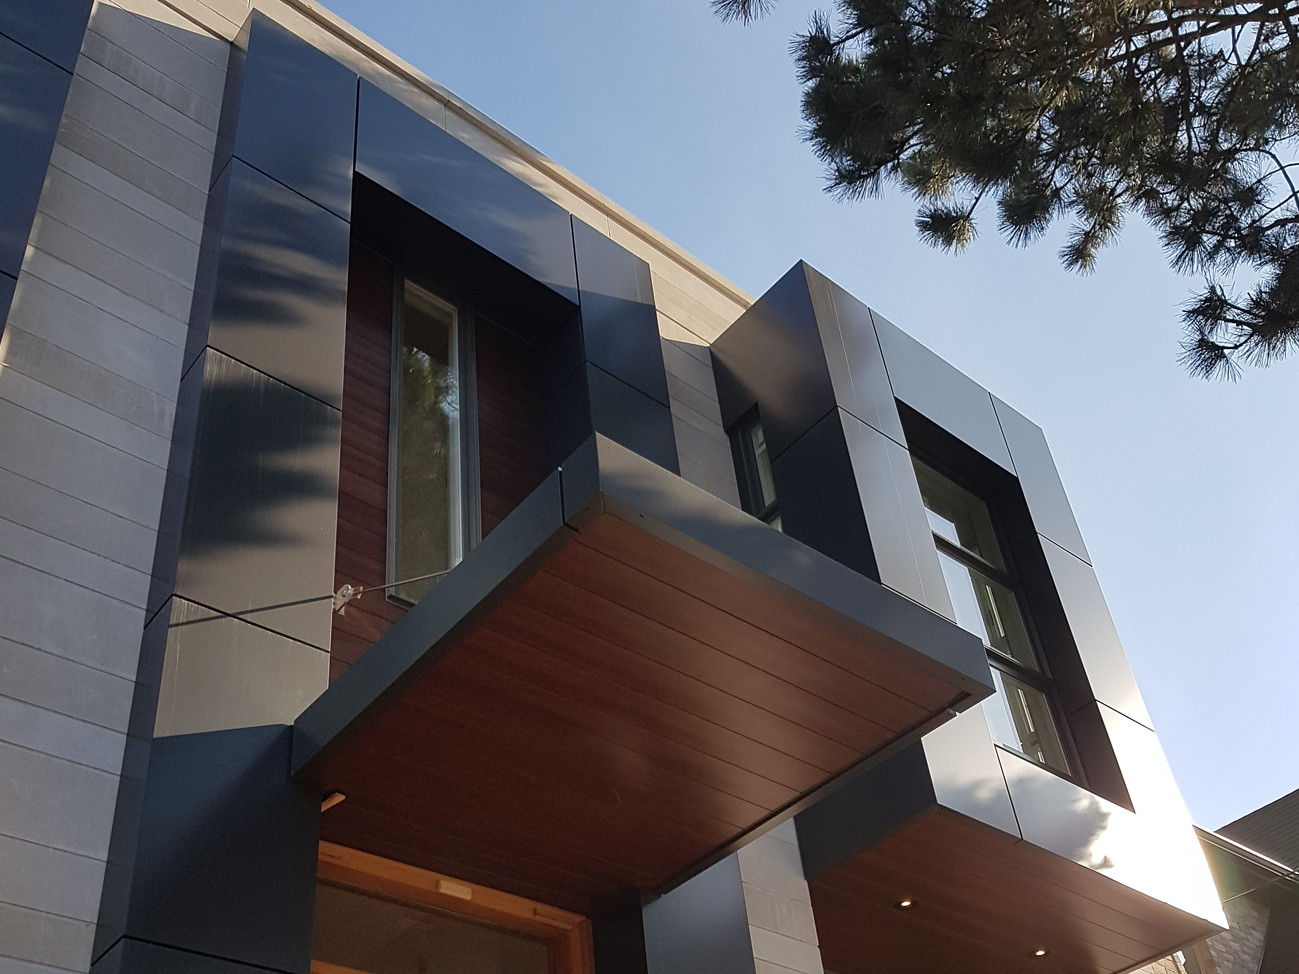 Armor Height Residence